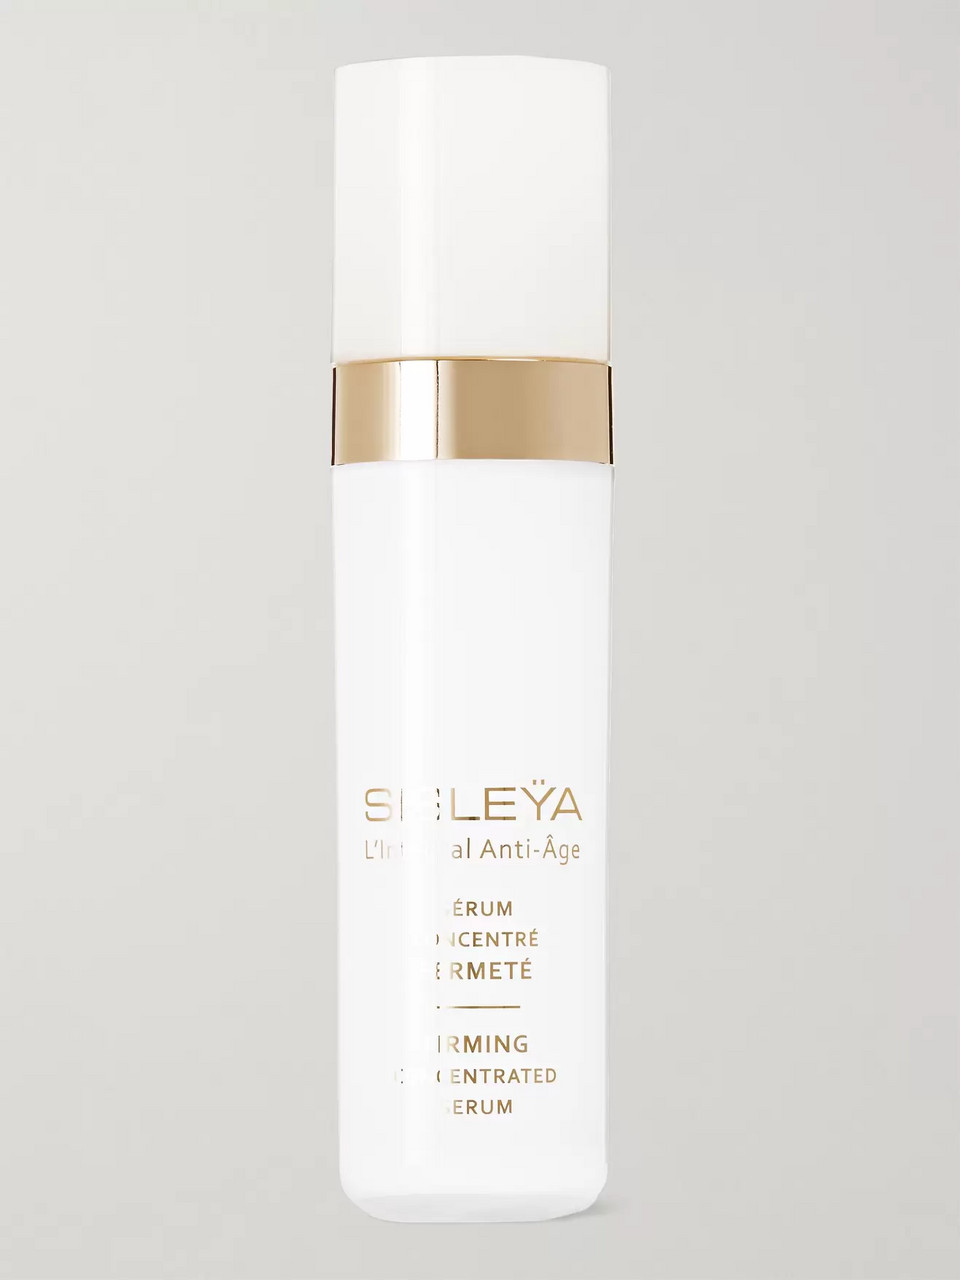 Sisley - Paris Sisleÿa L'Intégral Anti-Age Firming Concentrated Serum, 30ml